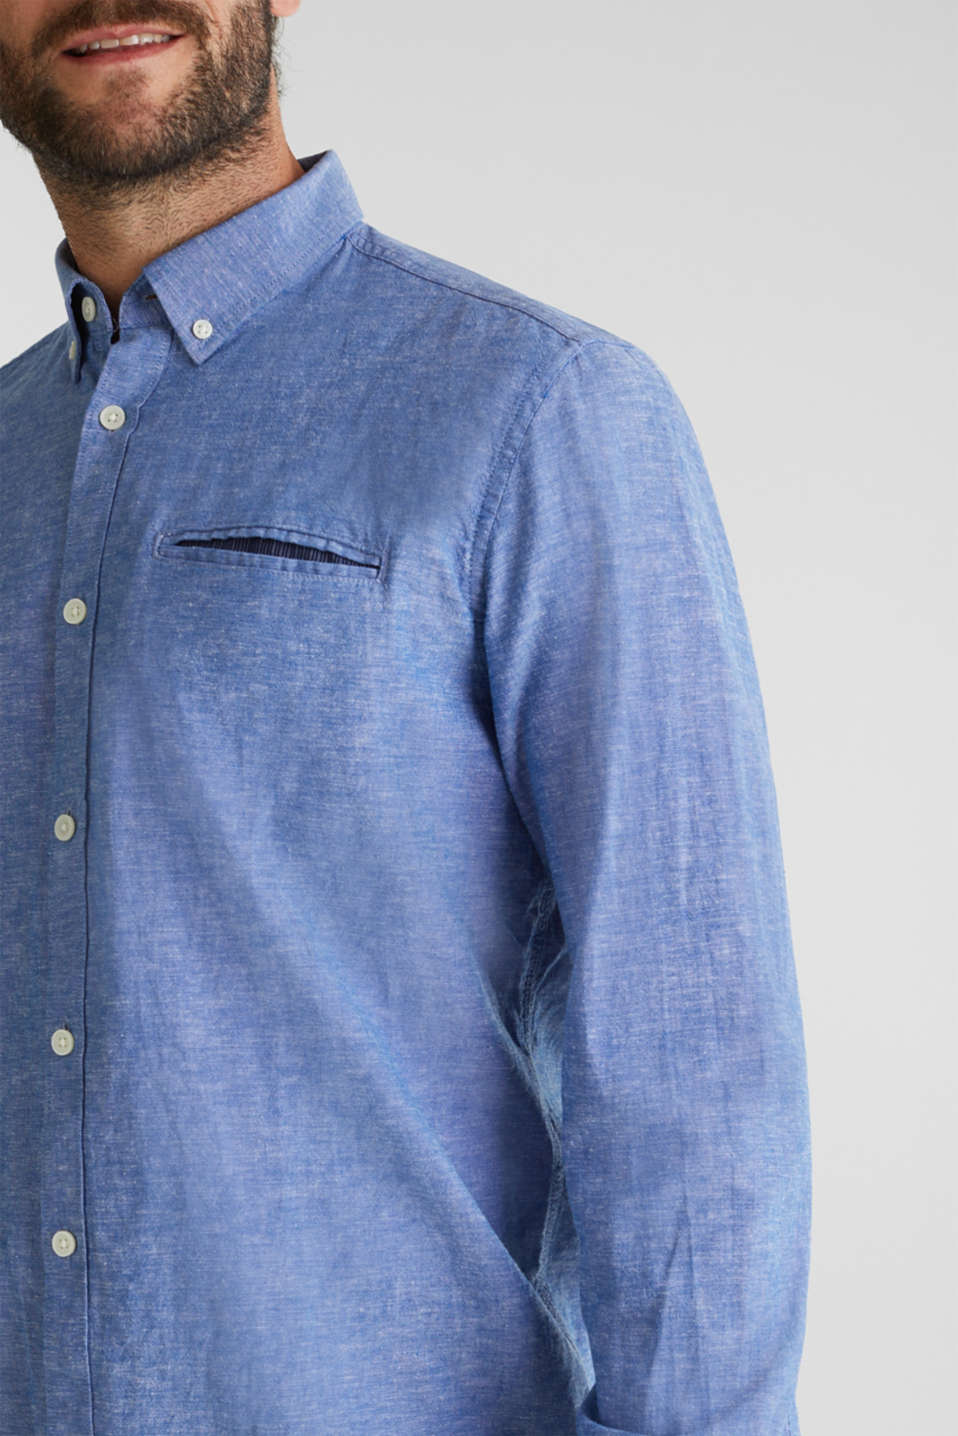 With linen: button-down shirt, LIGHT BLUE 5, detail image number 1